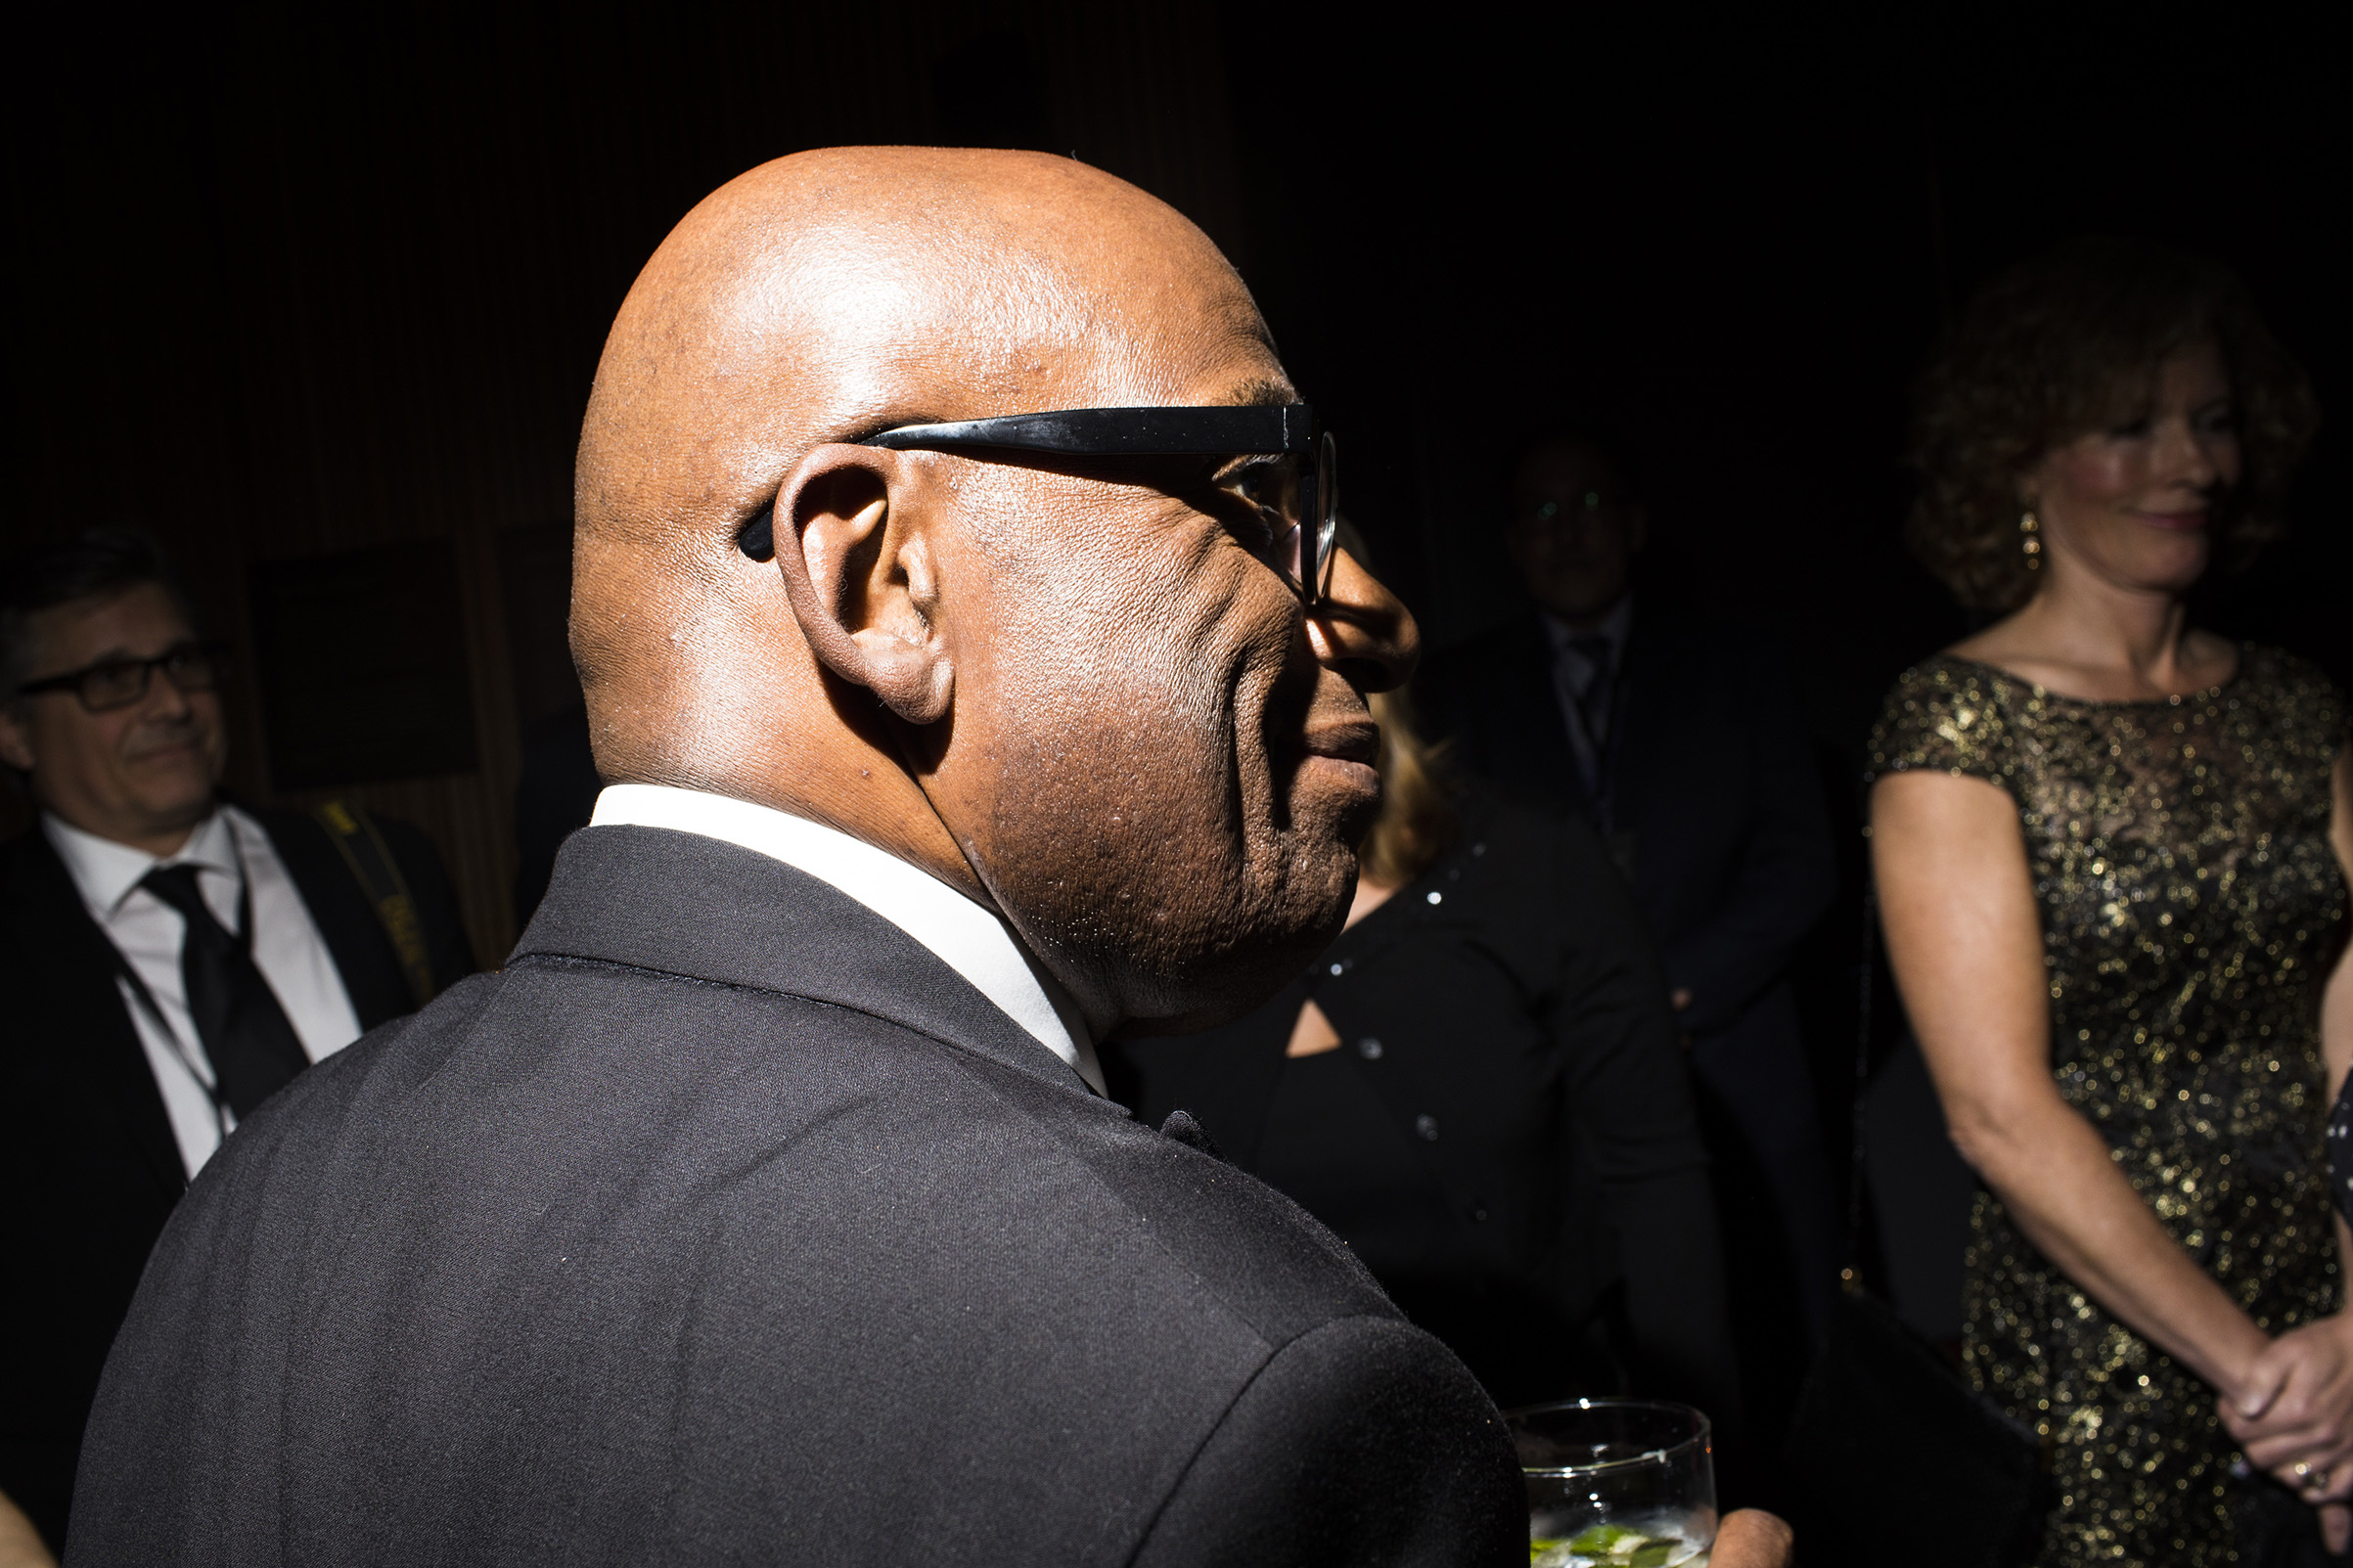 Al Roker at the Time 100 Gala at Jazz at Lincoln Center on April 24, 2018 in New York City.